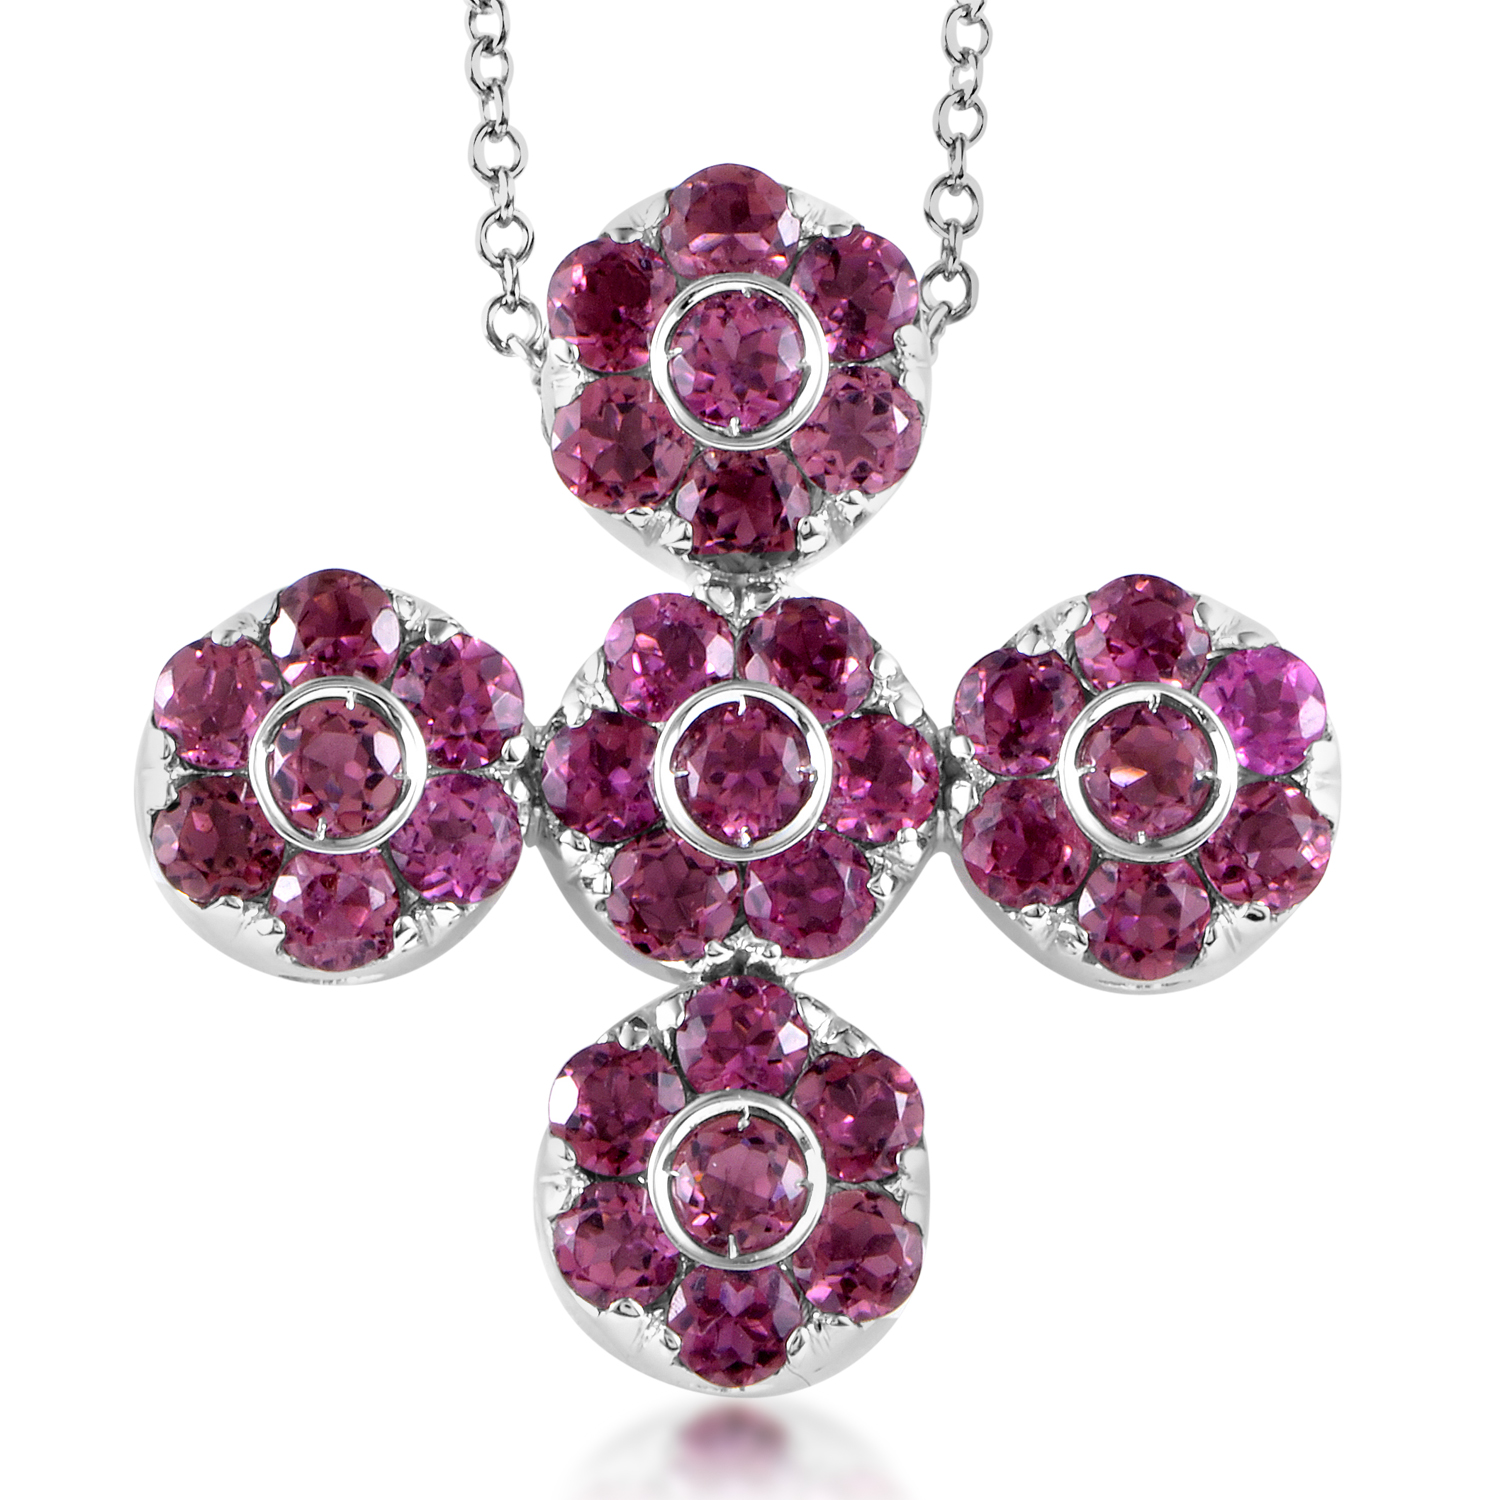 Women's 18K White Gold Tourmaline Cross Pendant Necklace